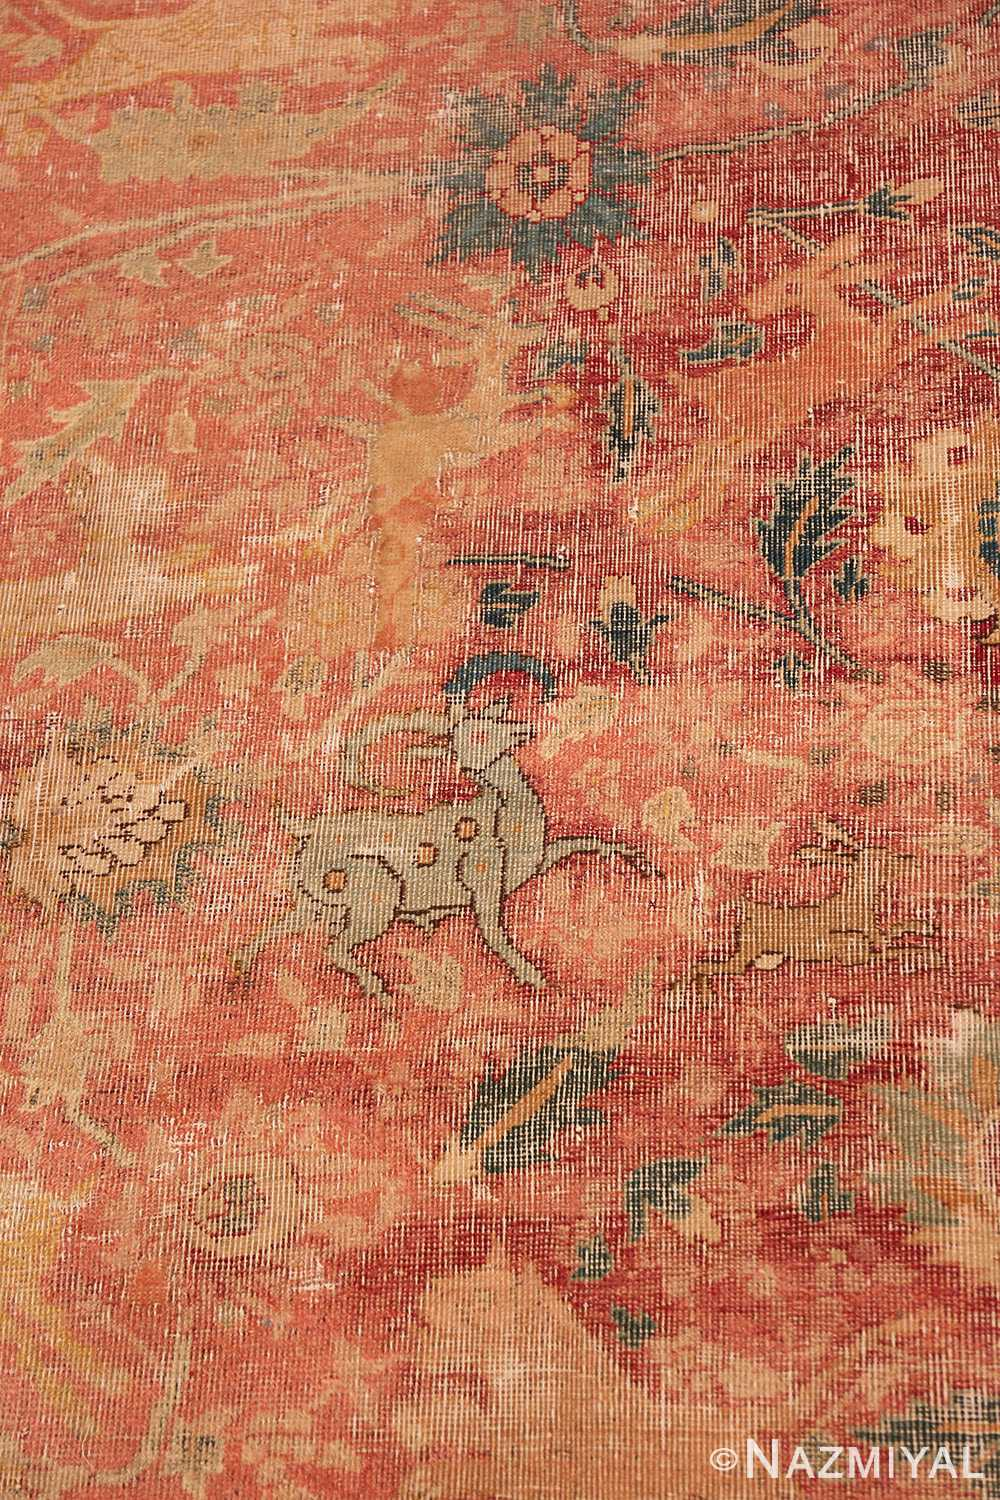 Deer Antique gallery size 17th Century Isfahan Persian rug 3338 by Nazmiyal